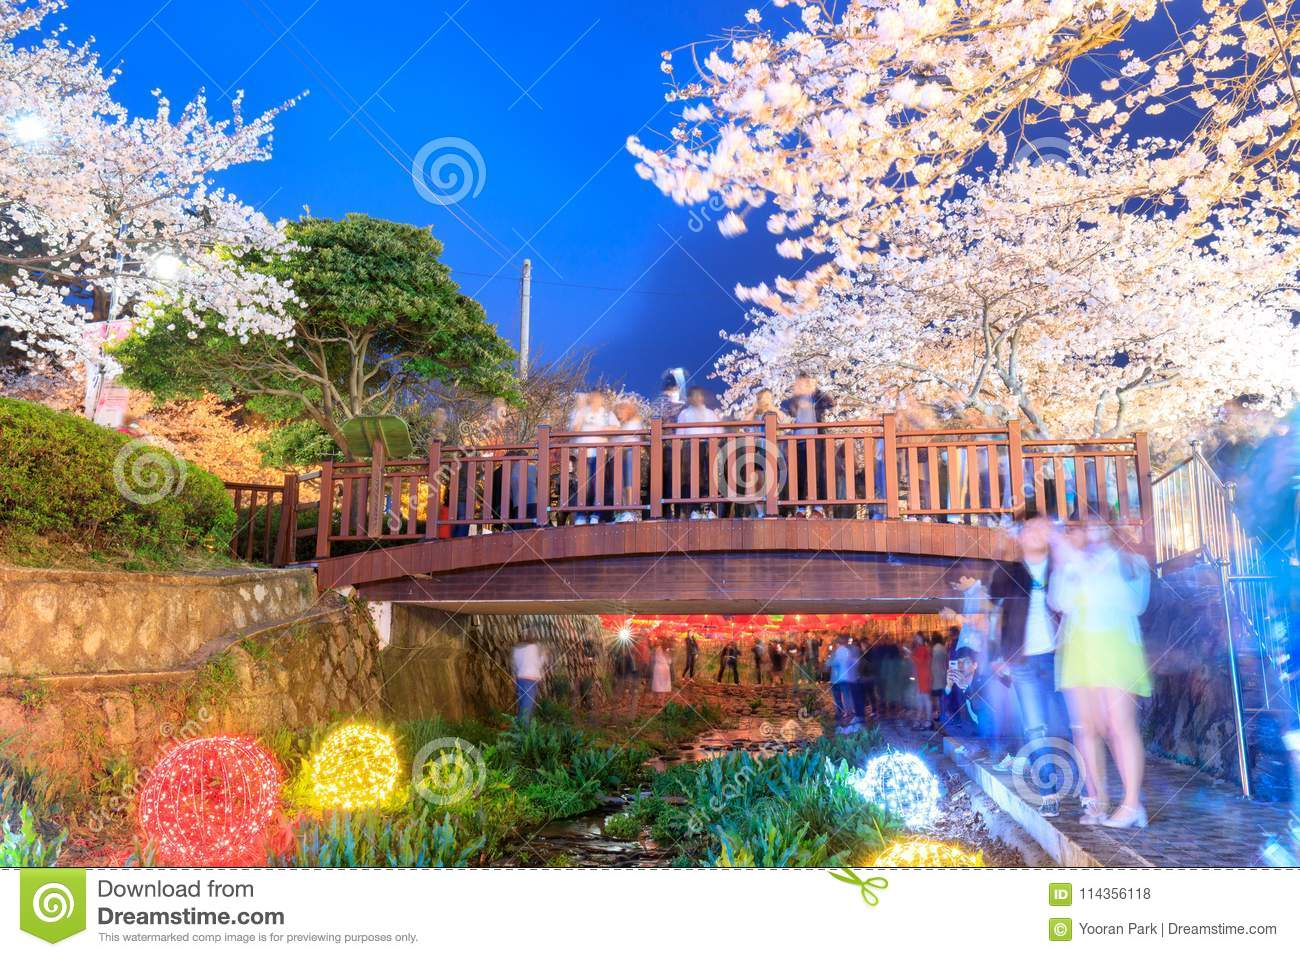 Spring Cherry Blossom Festival At Yeojwacheon Stream In Jinhae Editorial Stock Photo Image Of Festival Freshness 114356118,Small Square Kitchen Design Layout Pictures